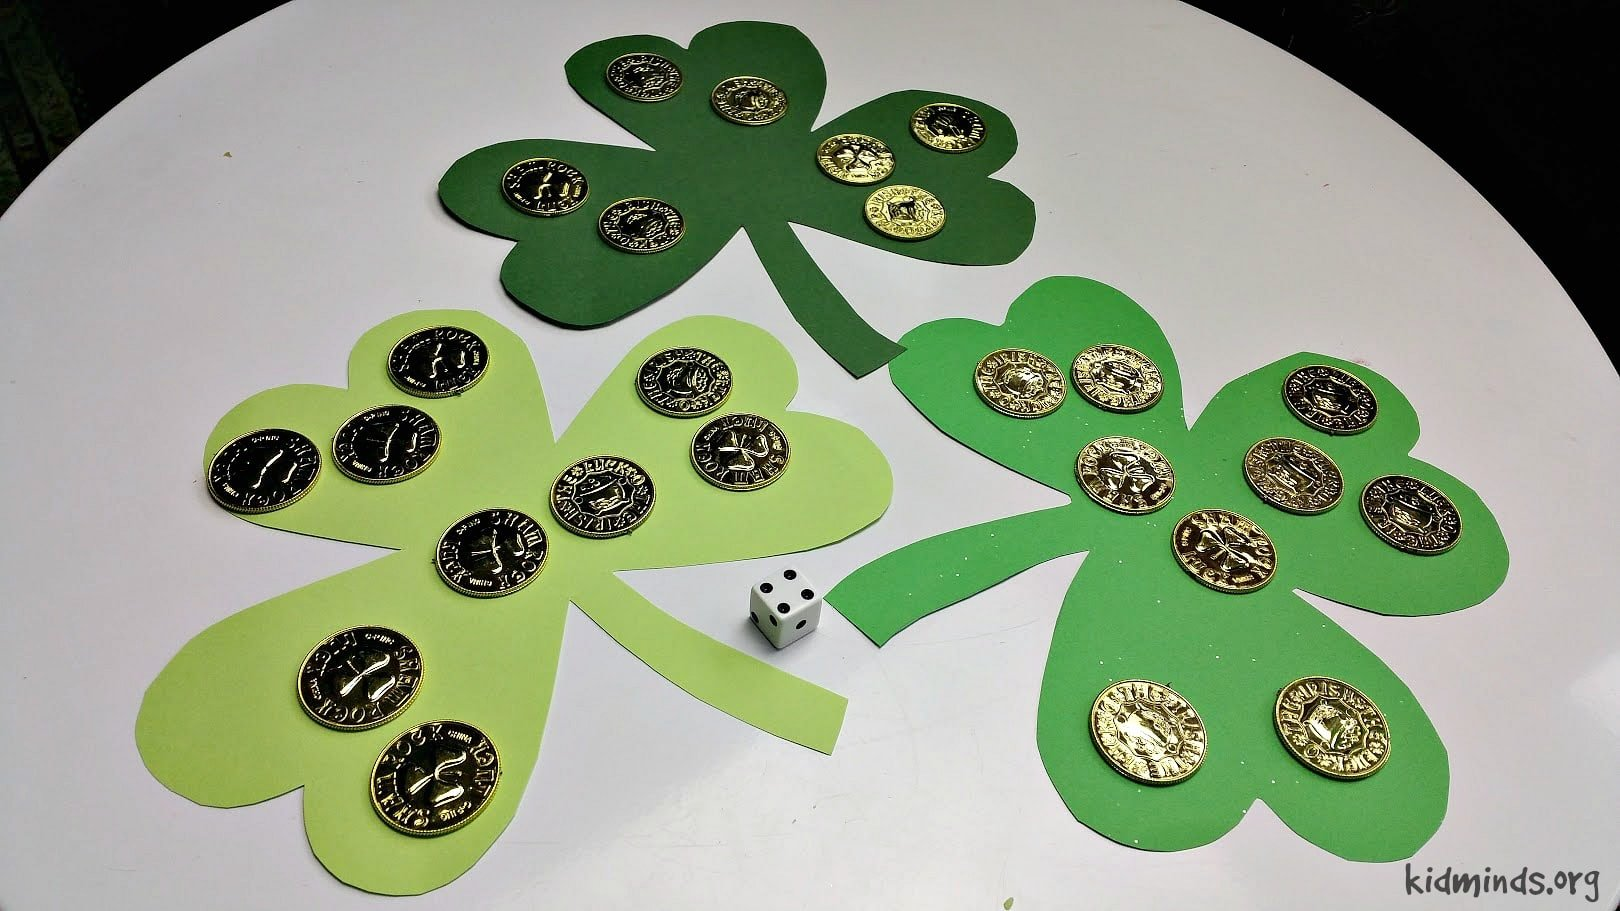 St. Patrick's Day Counting Game that is easy to set up. #earlychildhoodeducation #homeschooling #math #invitationtoplay